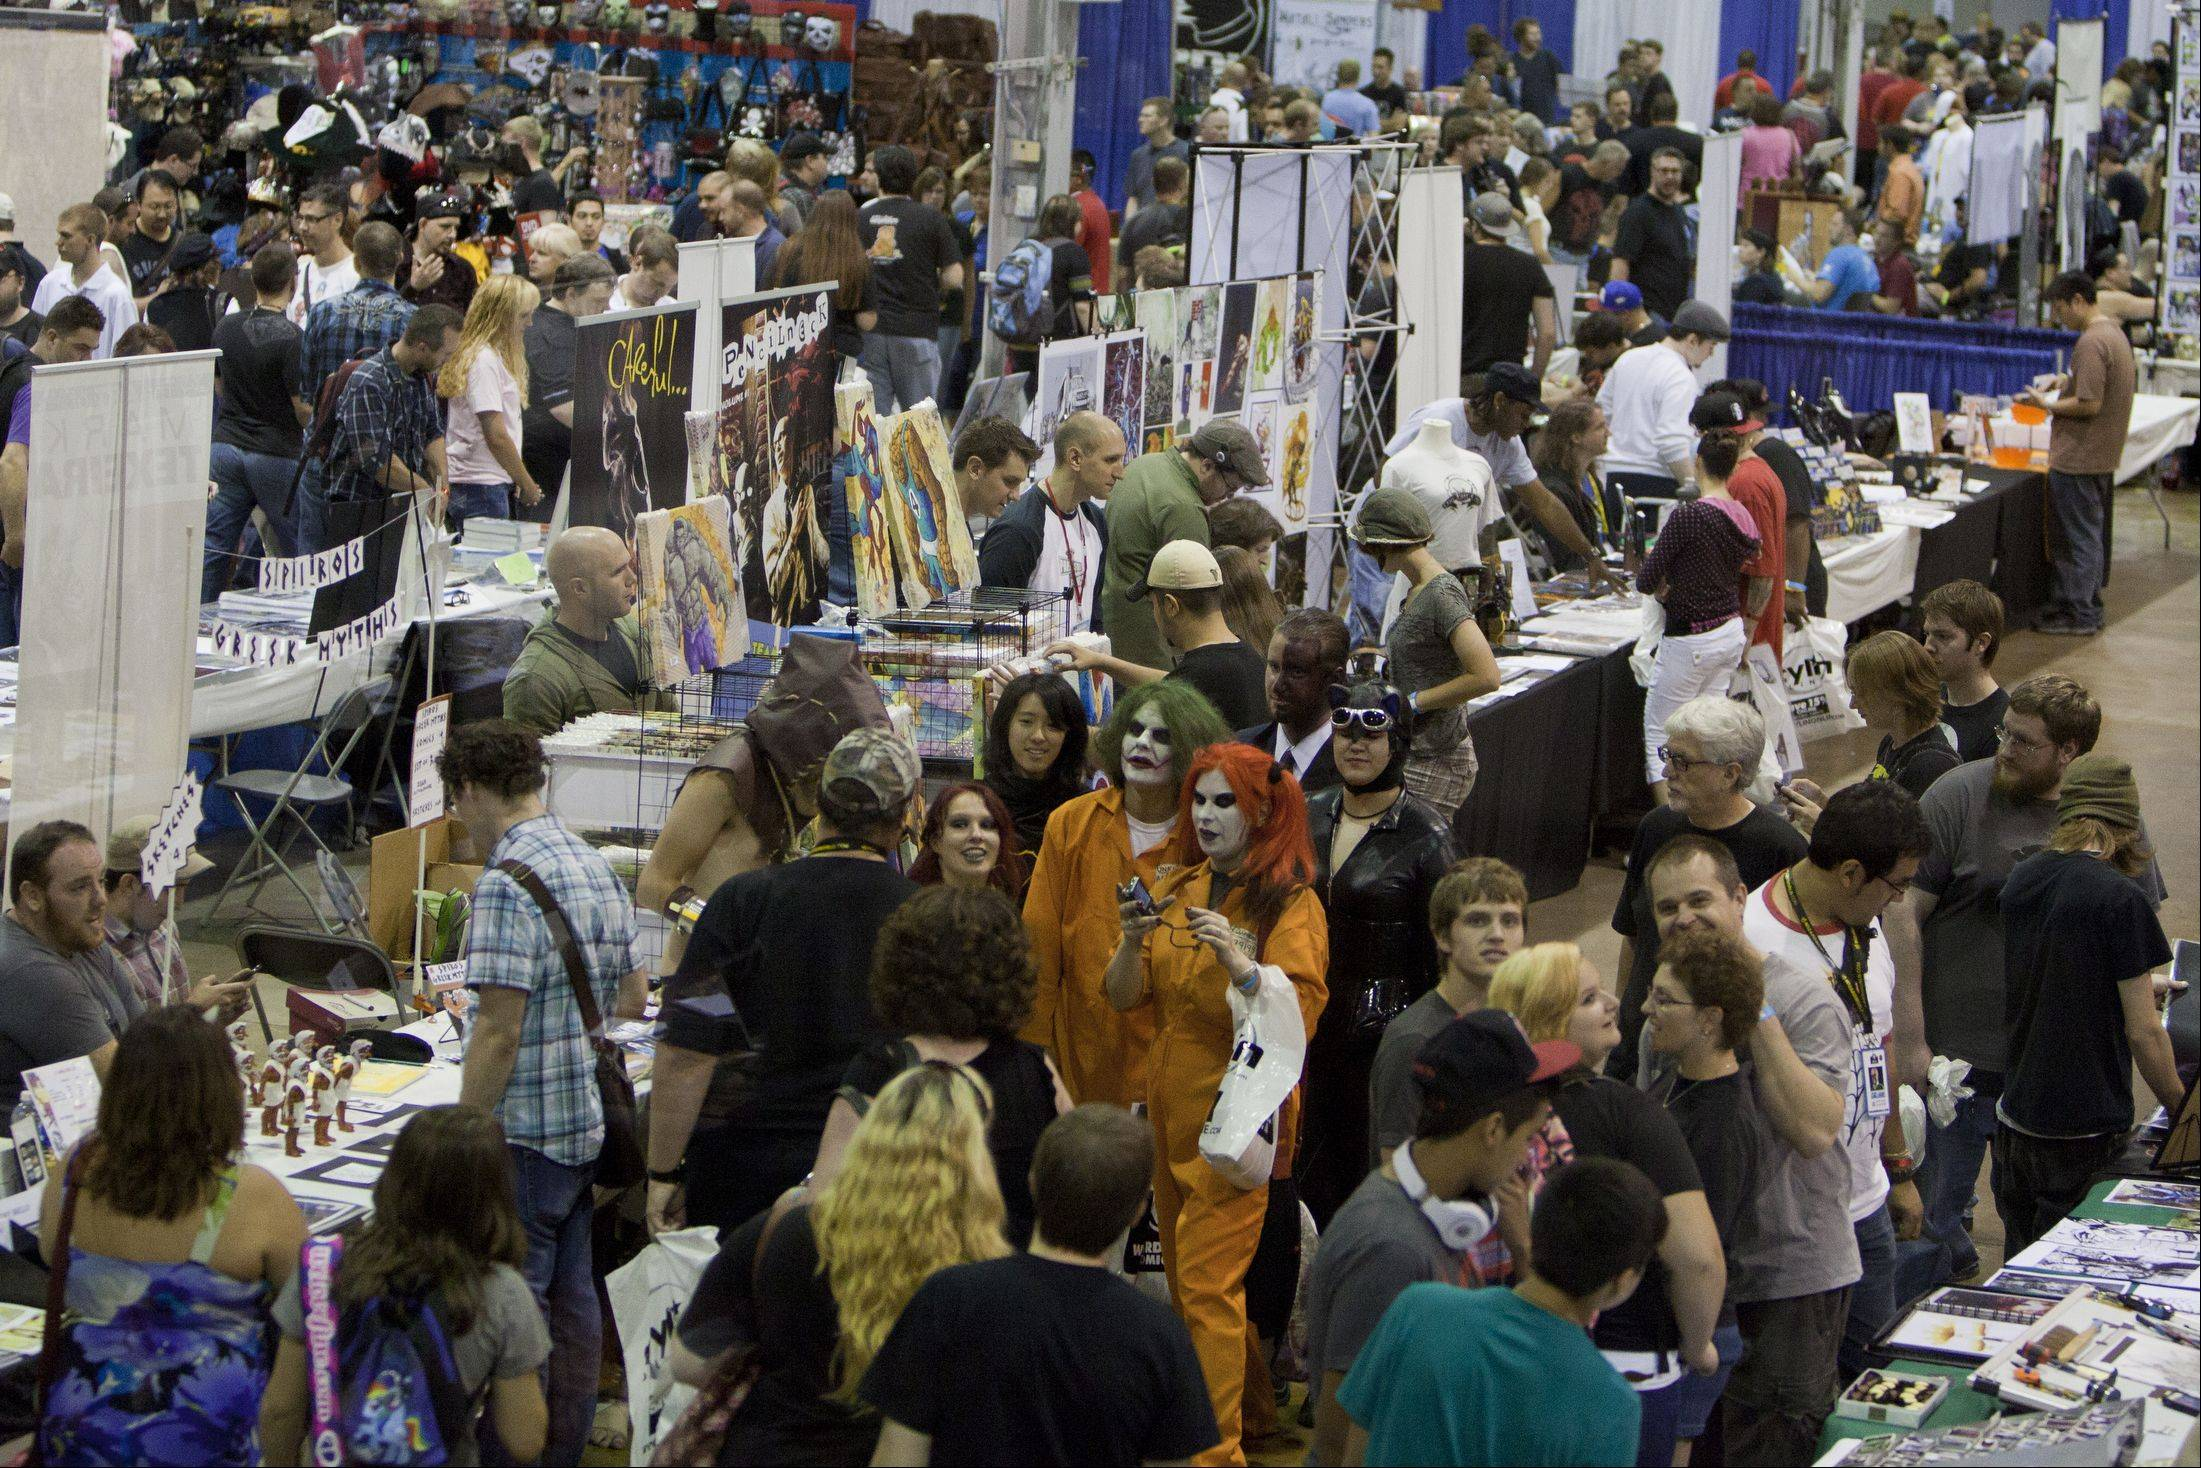 Thousands gather at the Donald E. Stephens Convention Center to be a part of annual Wizard World Chicago Comic Con. People could visit with comic book artists and buy all things that you would find in comics.